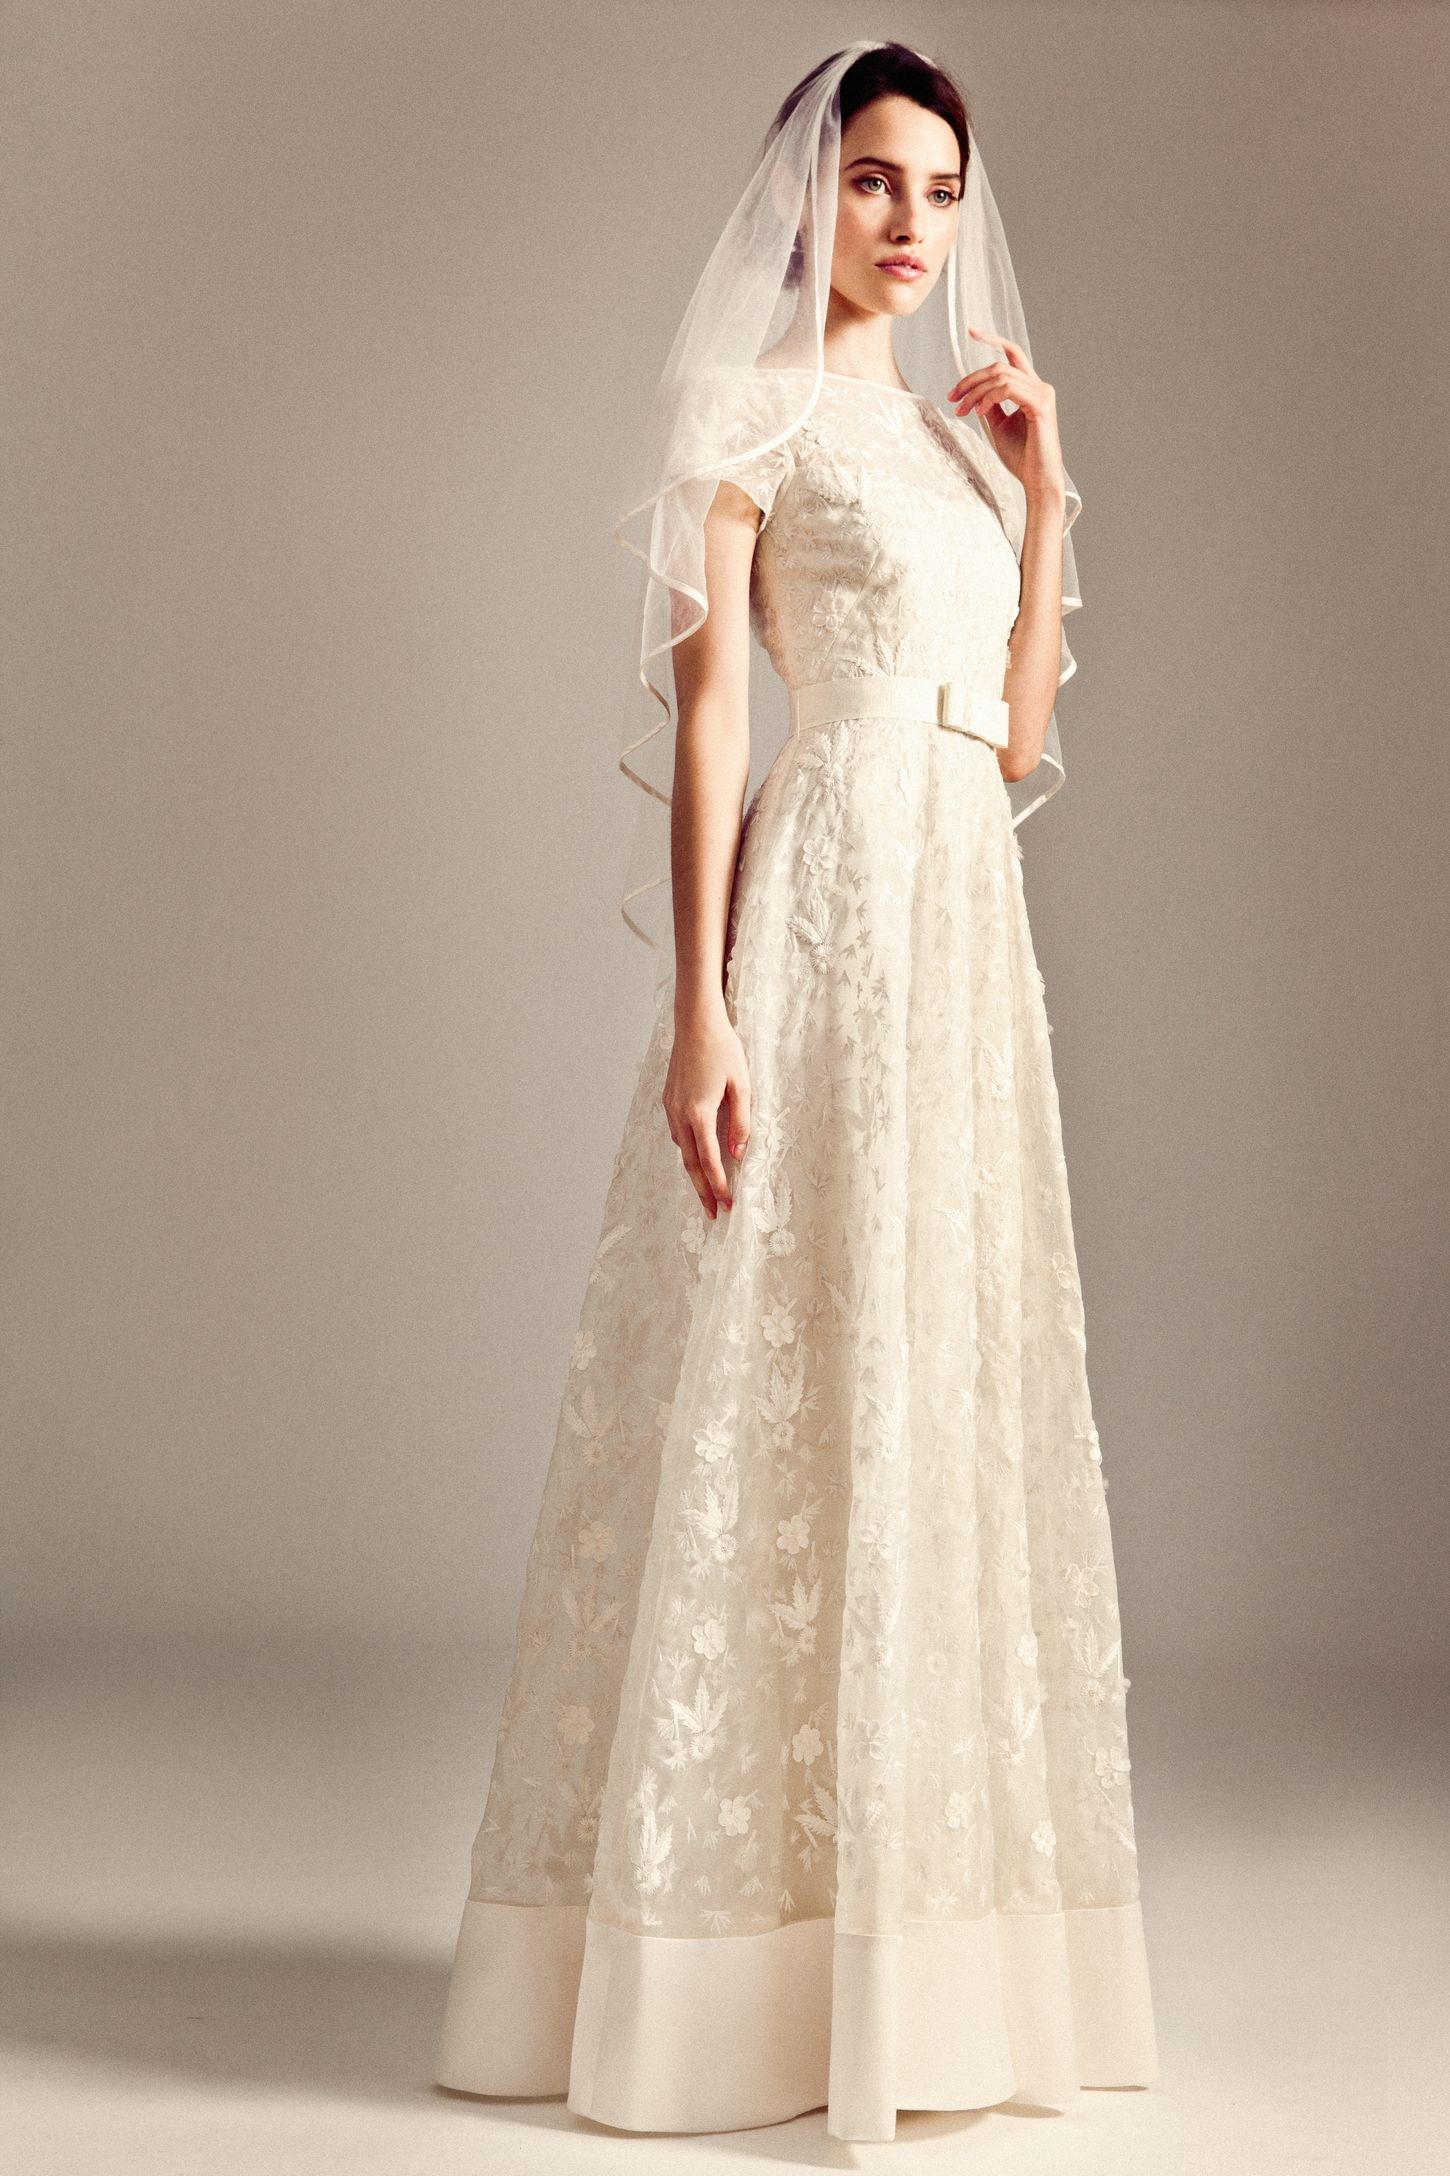 Dawn Dress, Heart Shaped Veil from Temperley Bridal Iris Collection ...